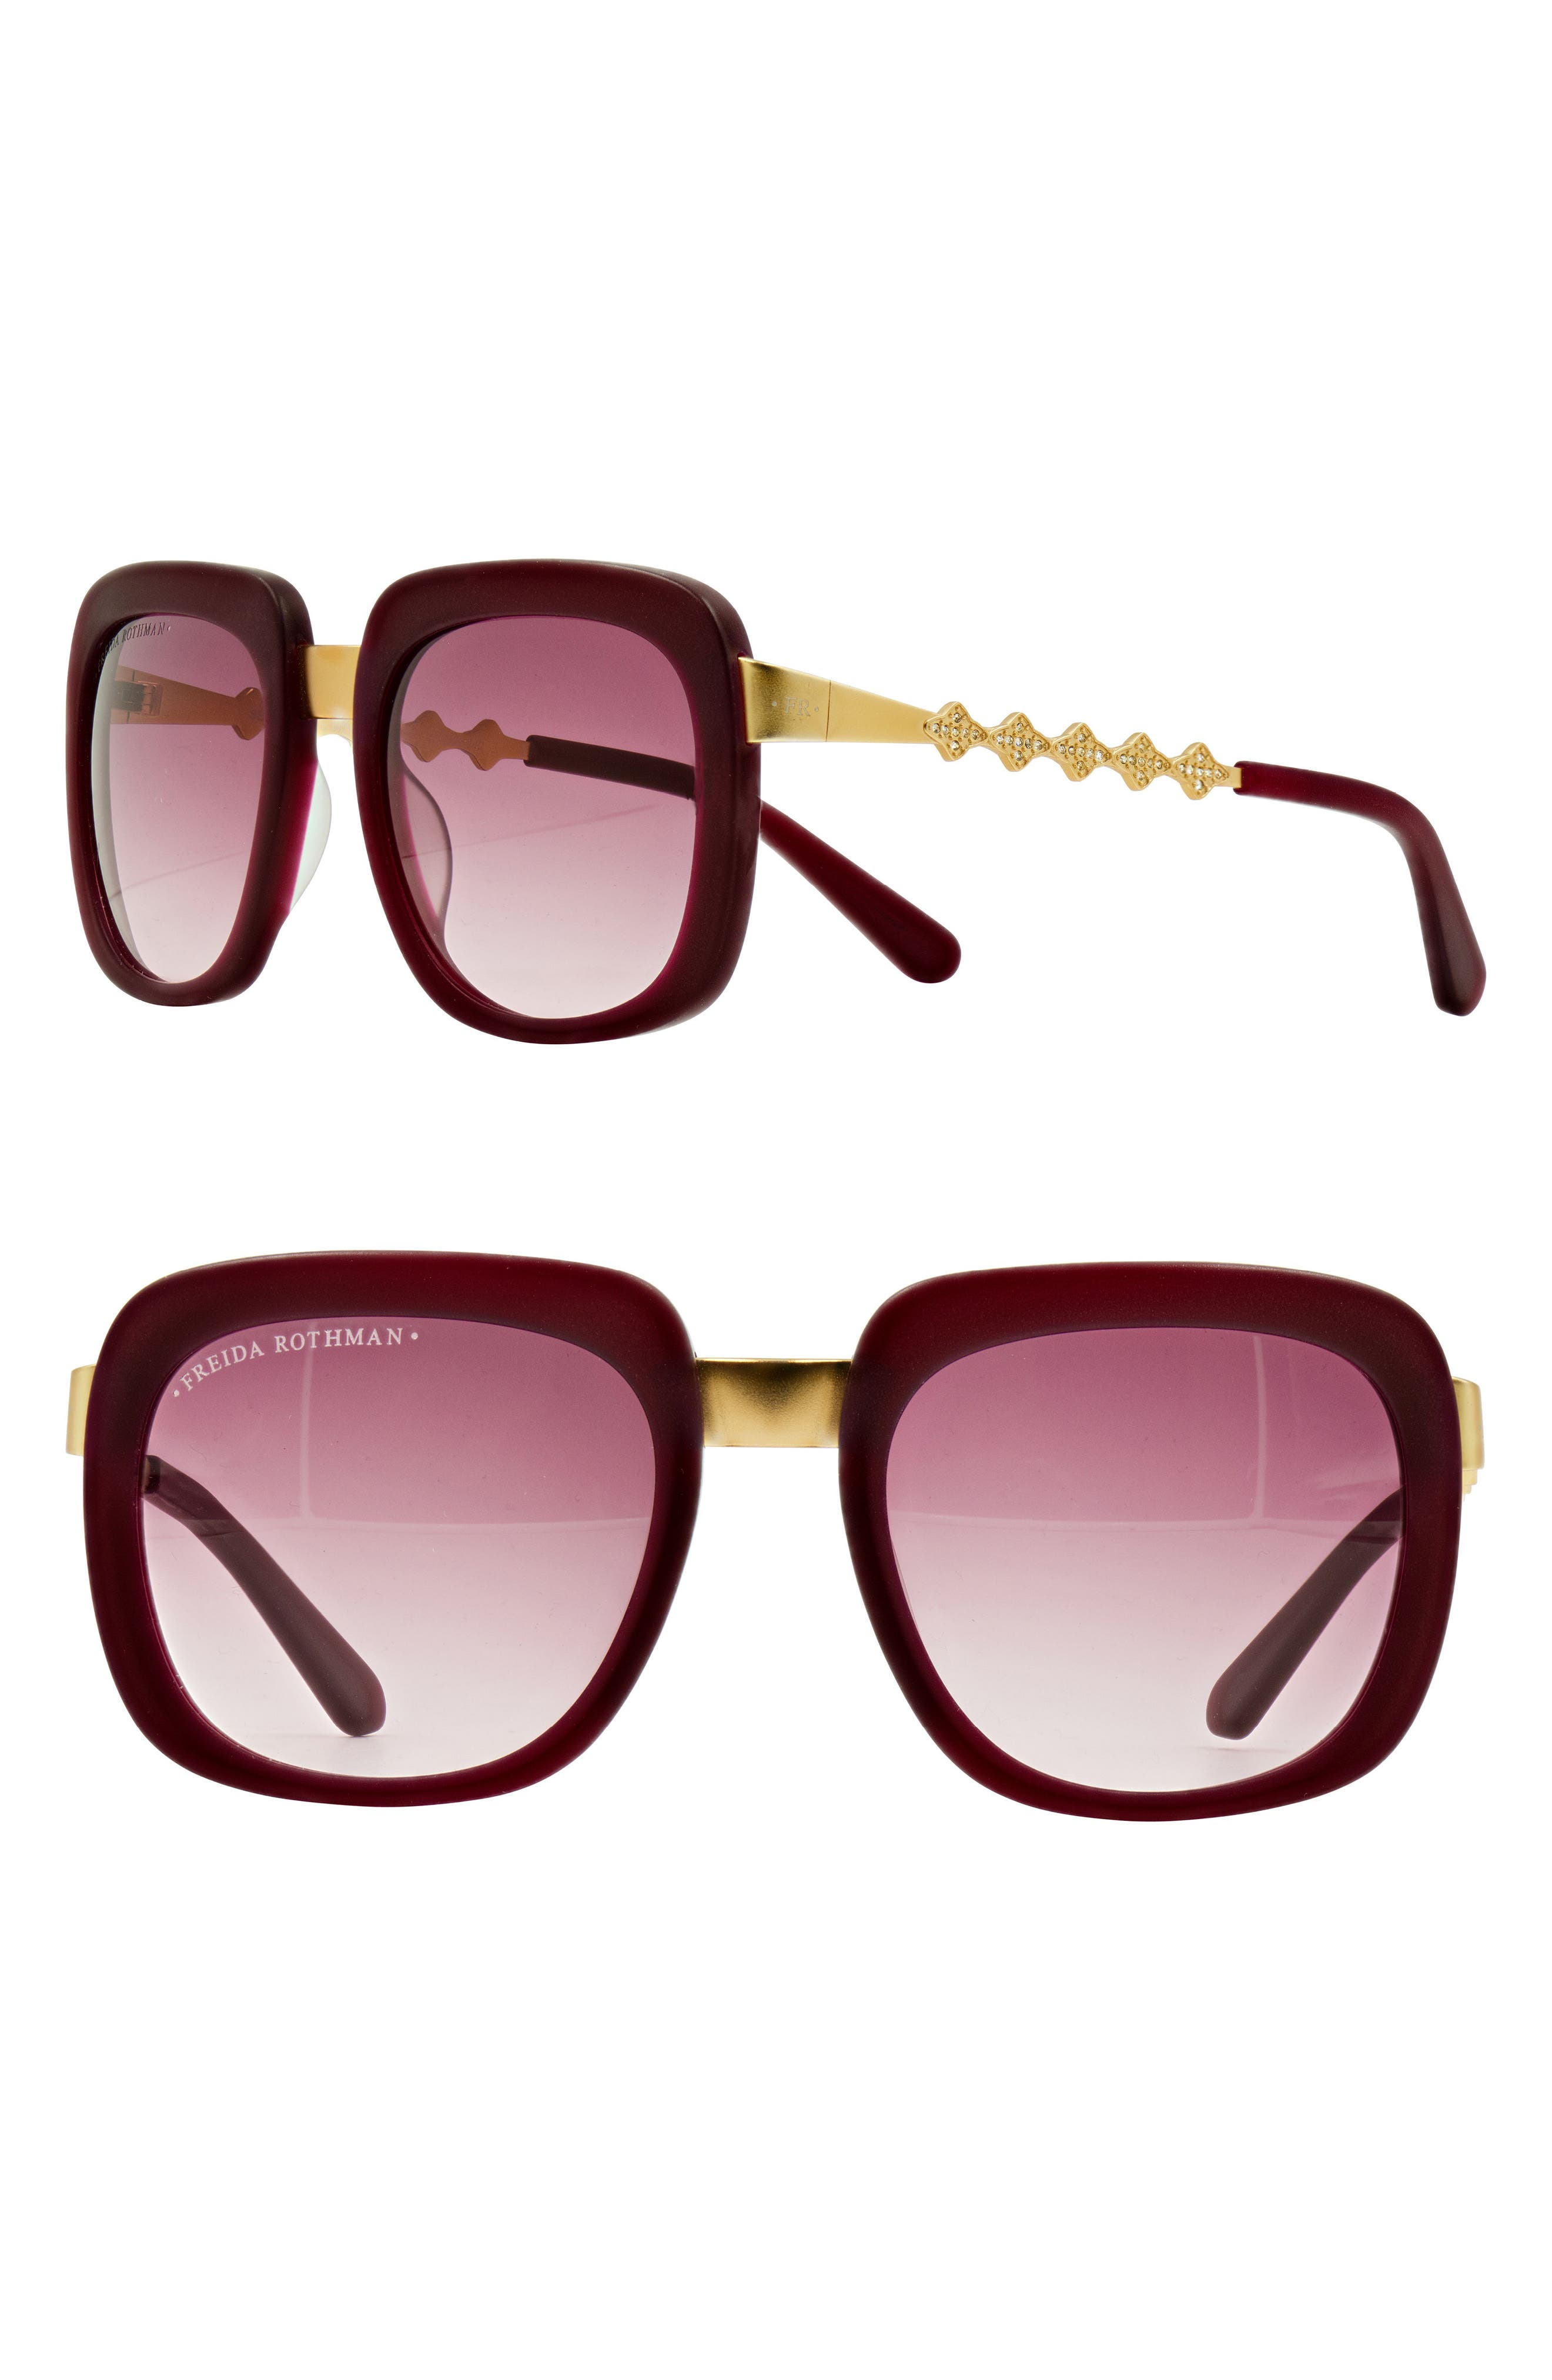 Main Image - Freida Rothman 'Serena' 57mm Square Sunglasses